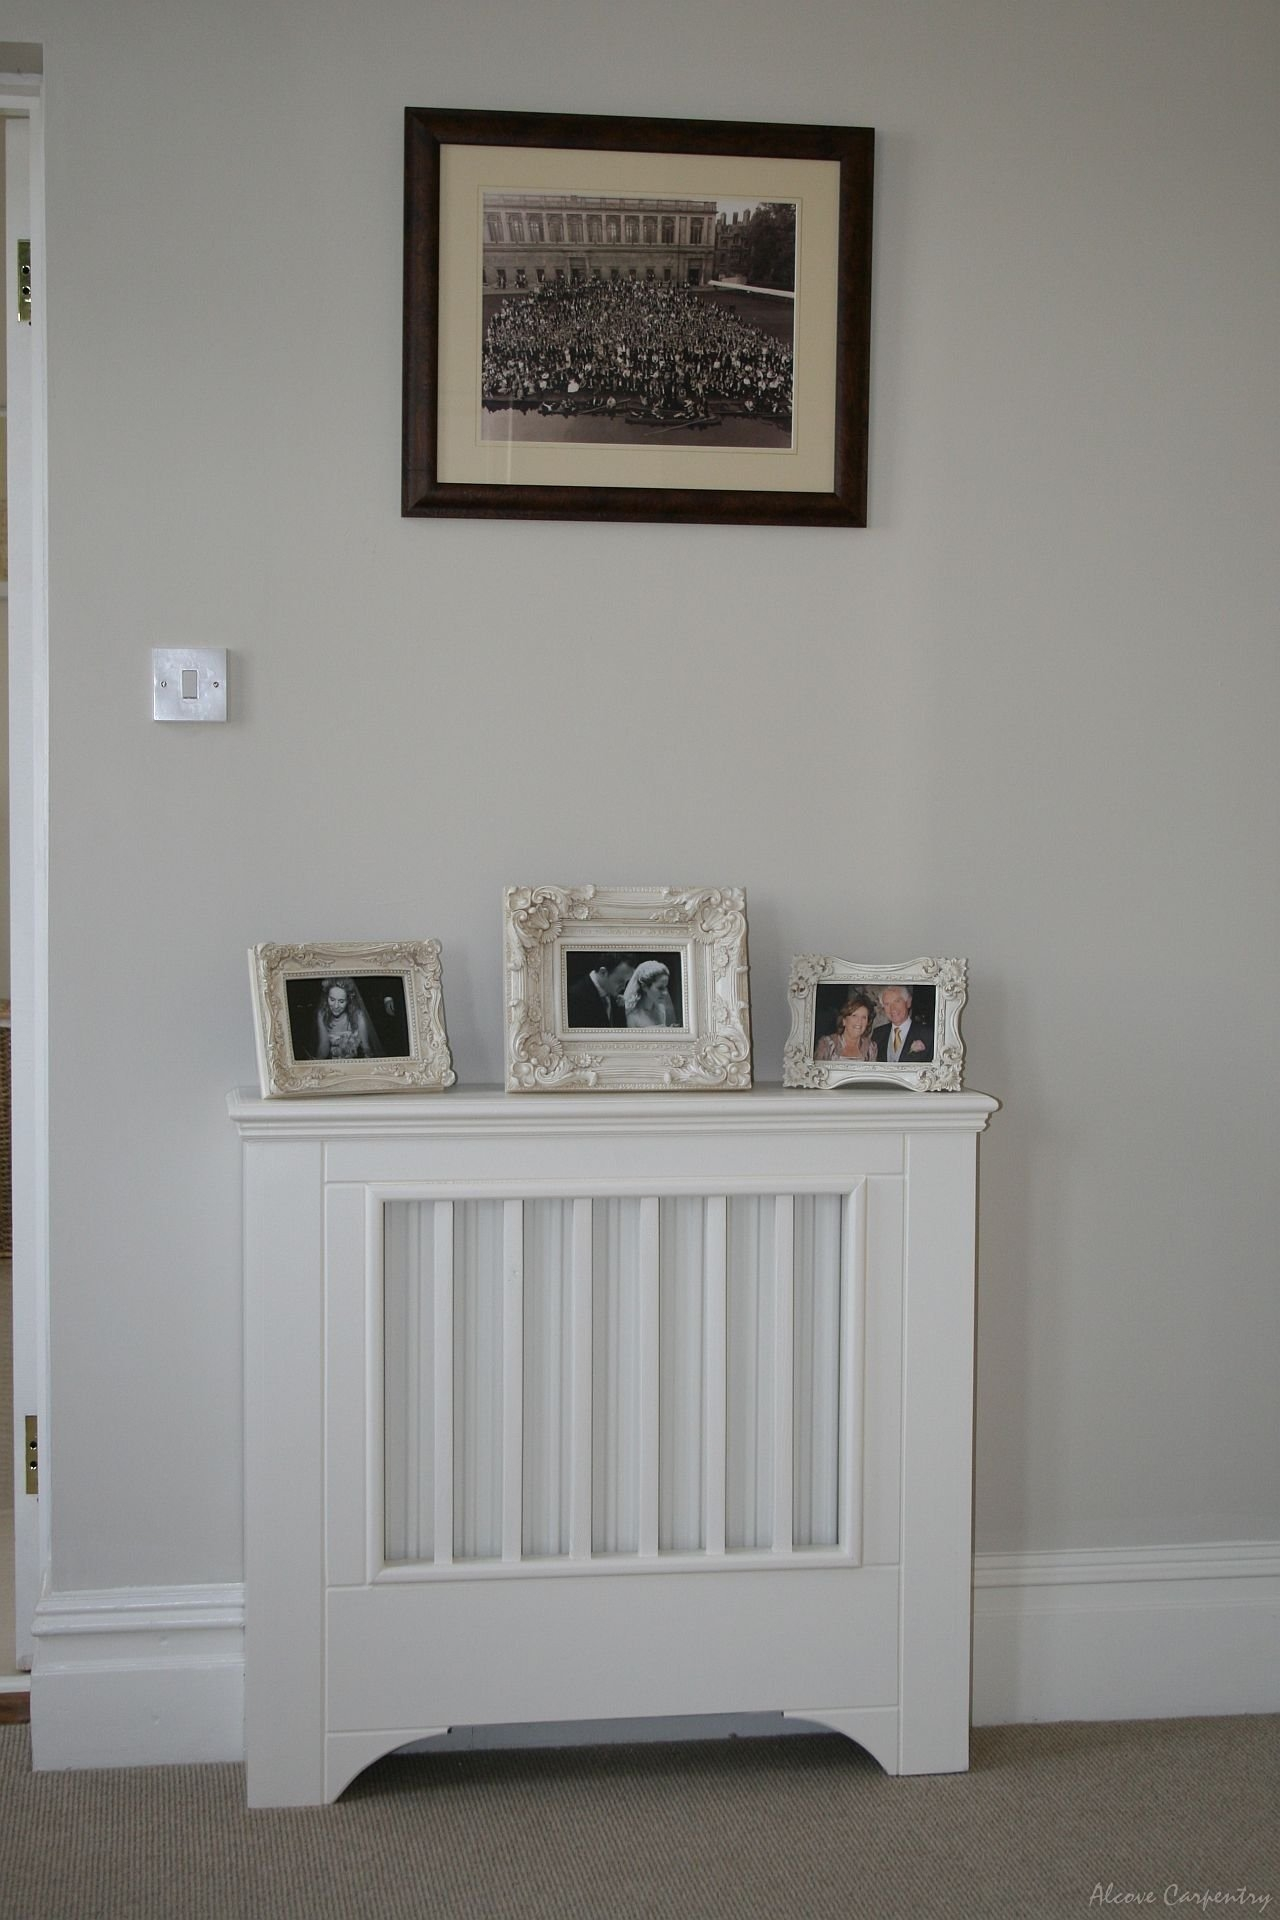 Radiator Covers Alcove Carpentry Intended For Radiator Cupboards (View 9 of 15)